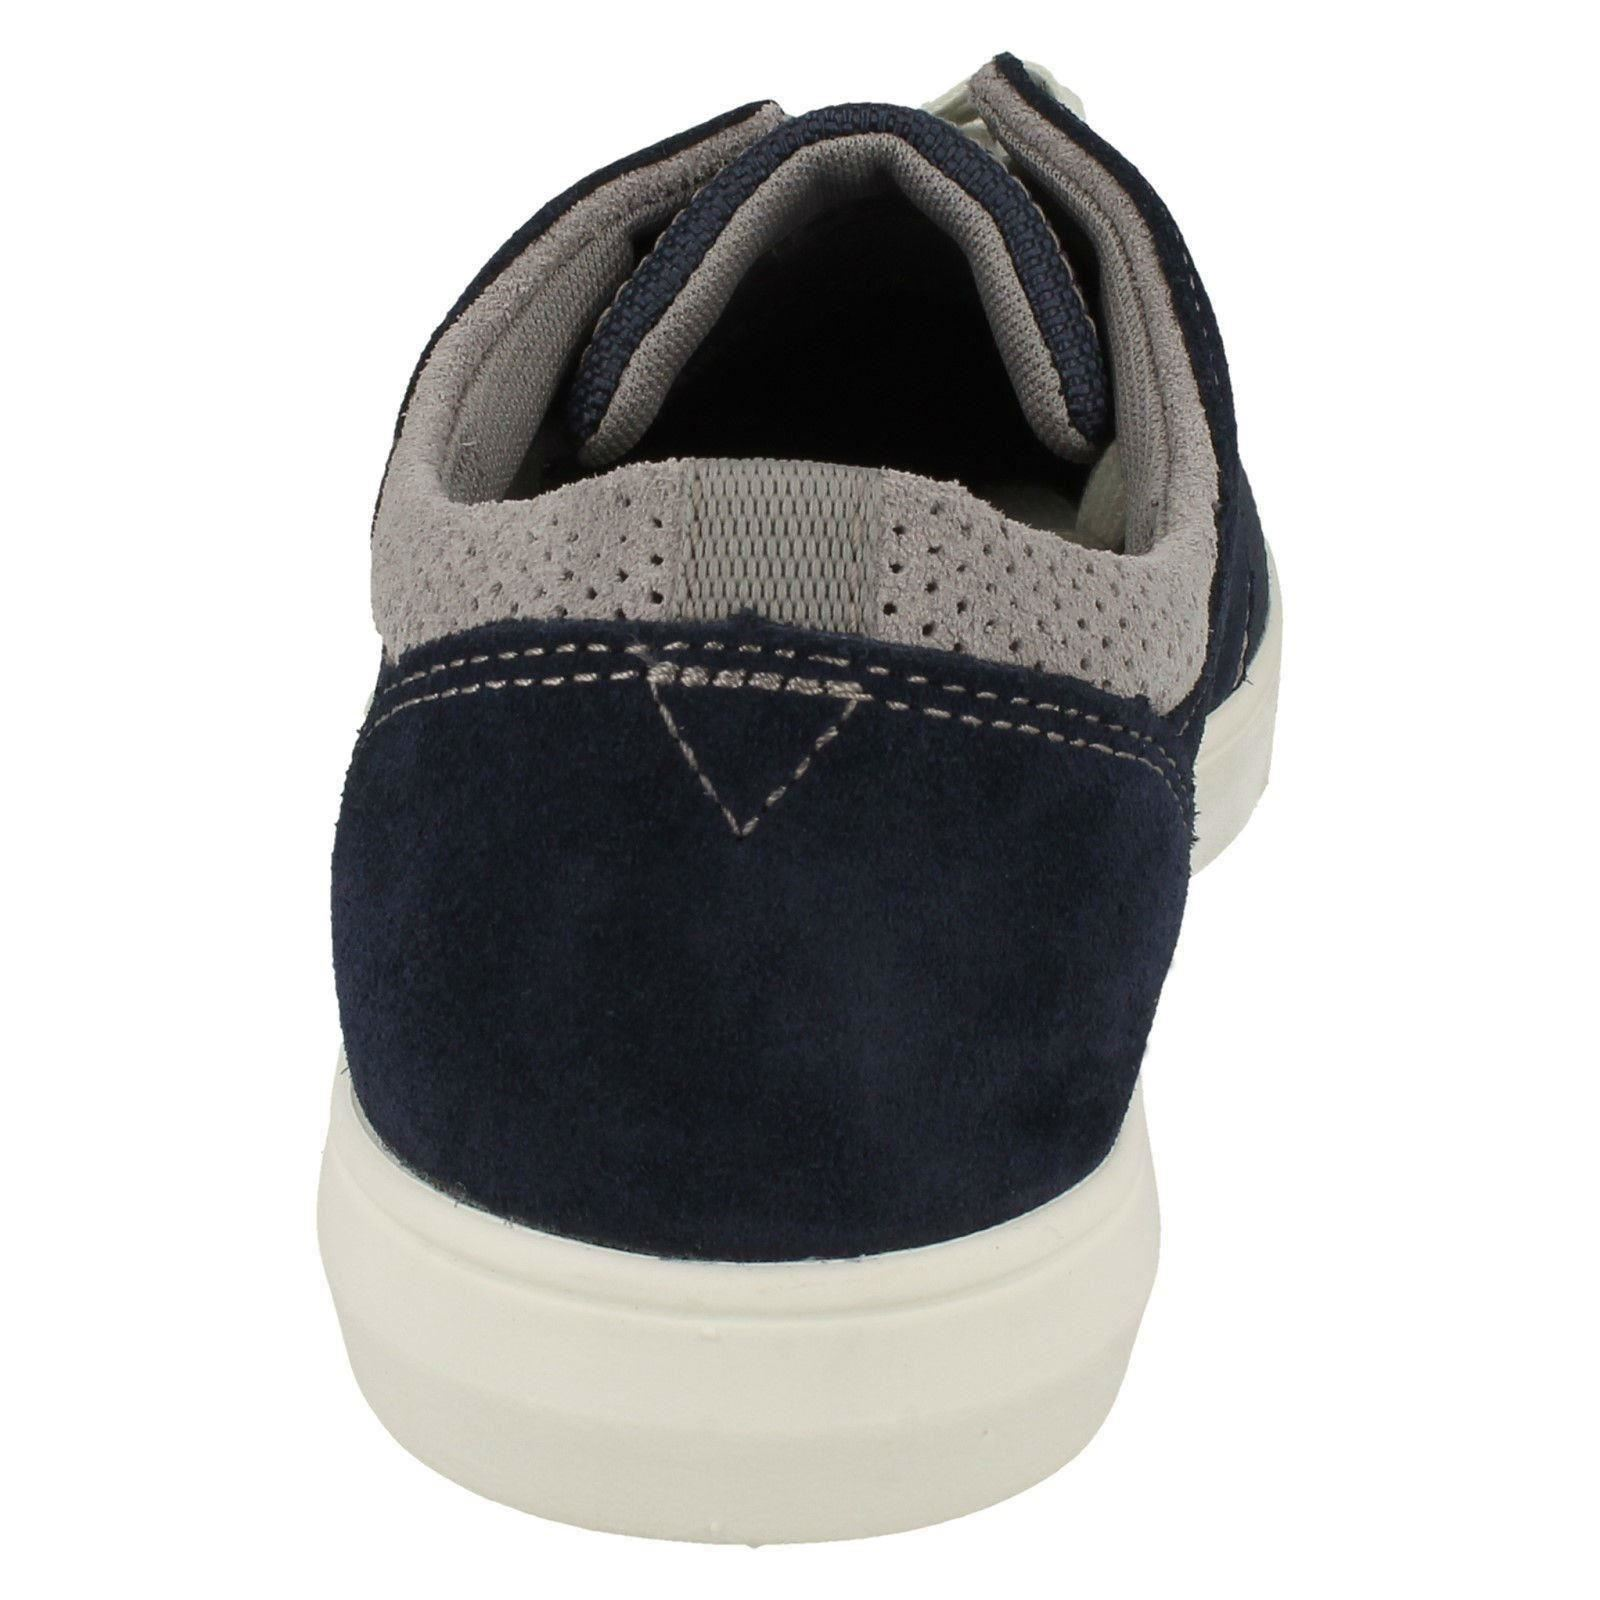 Mens Clarks Rounded Toe Casual Lace Up Suede /& Textile Shoes Landry Edge